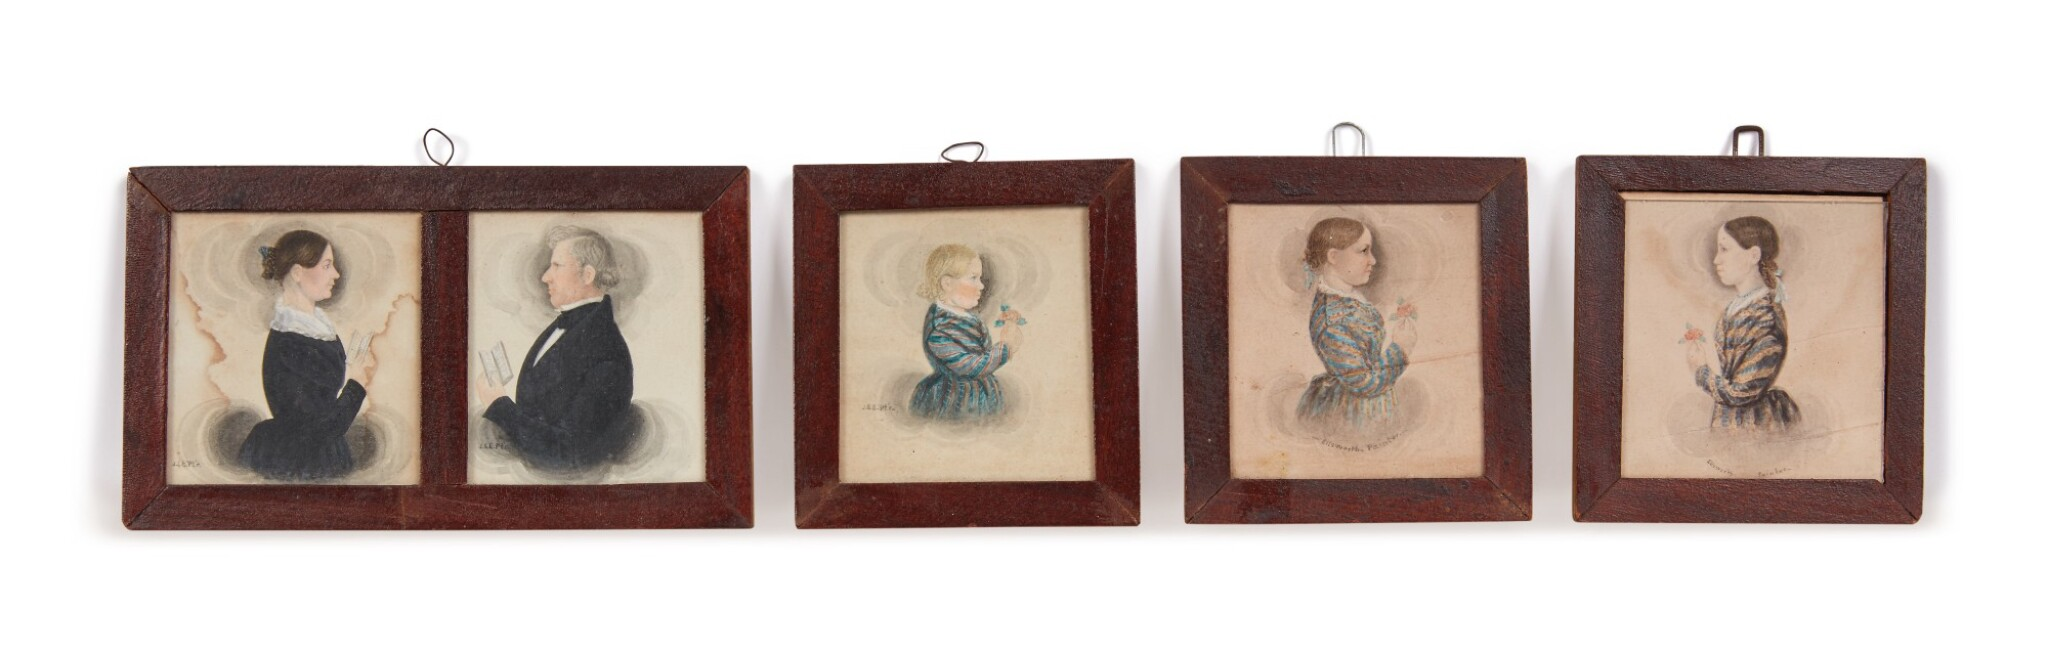 View full screen - View 1 of Lot 6. Group of Five Miniature Portraits of the Pomeroy Family.